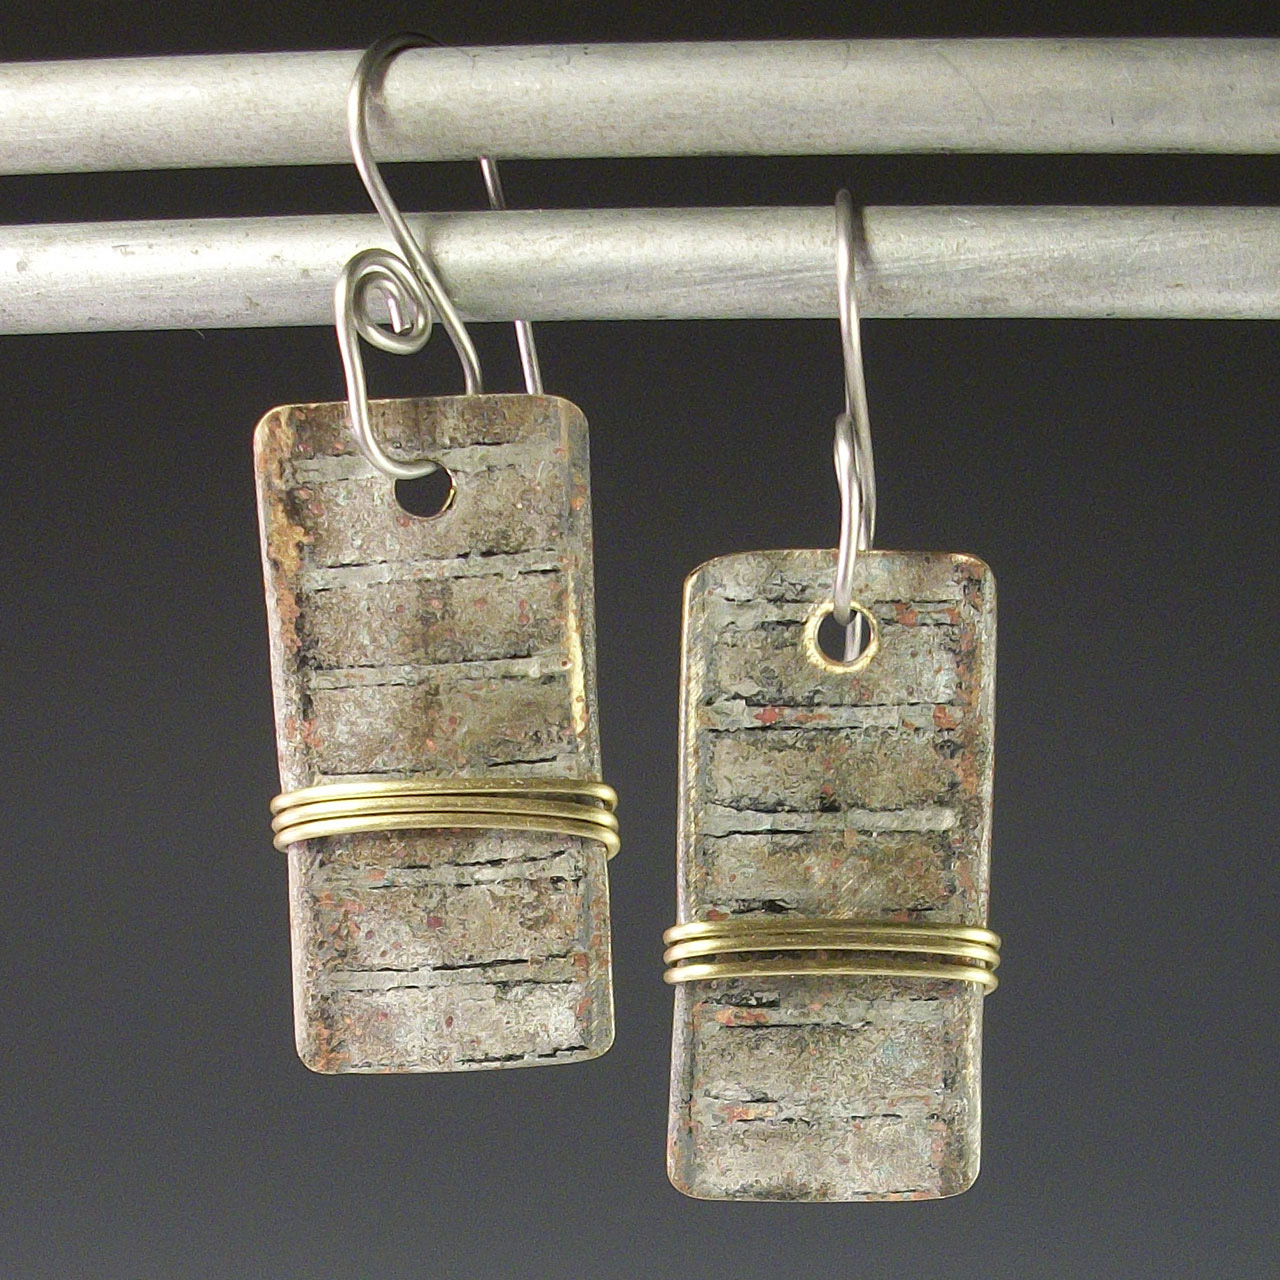 Wrapped Radiators Earrings by Mckenna Hallett